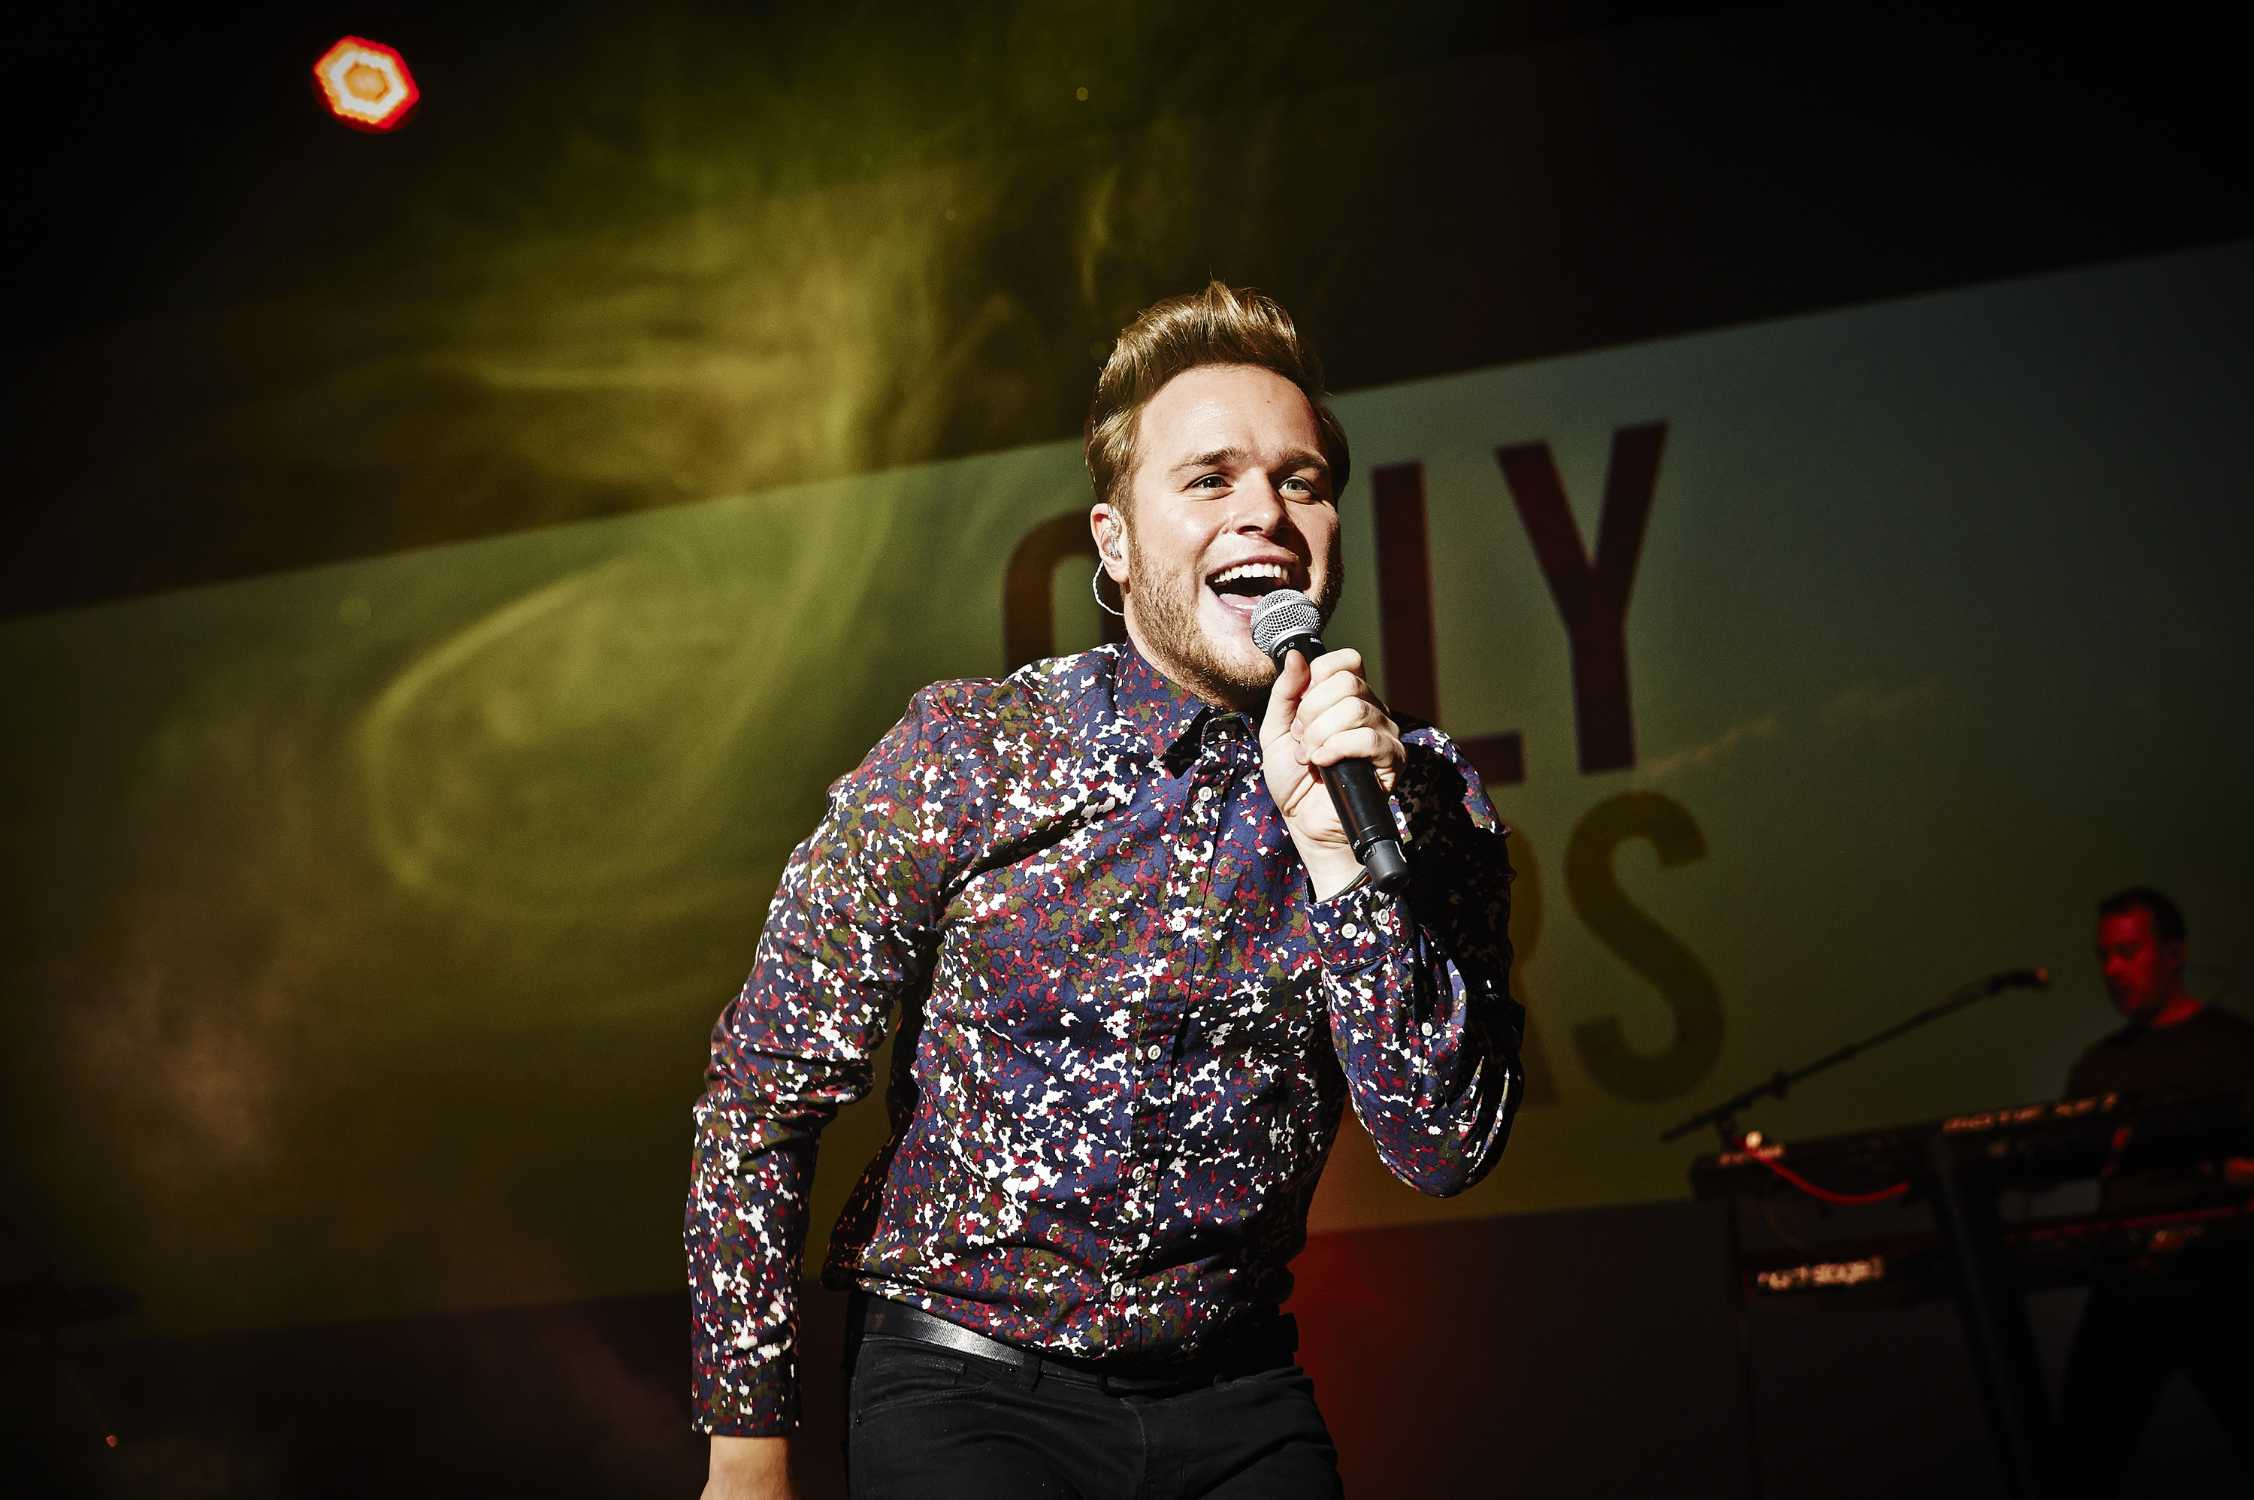 Olly Murs Premiered His New Album Live At Bmw Welt